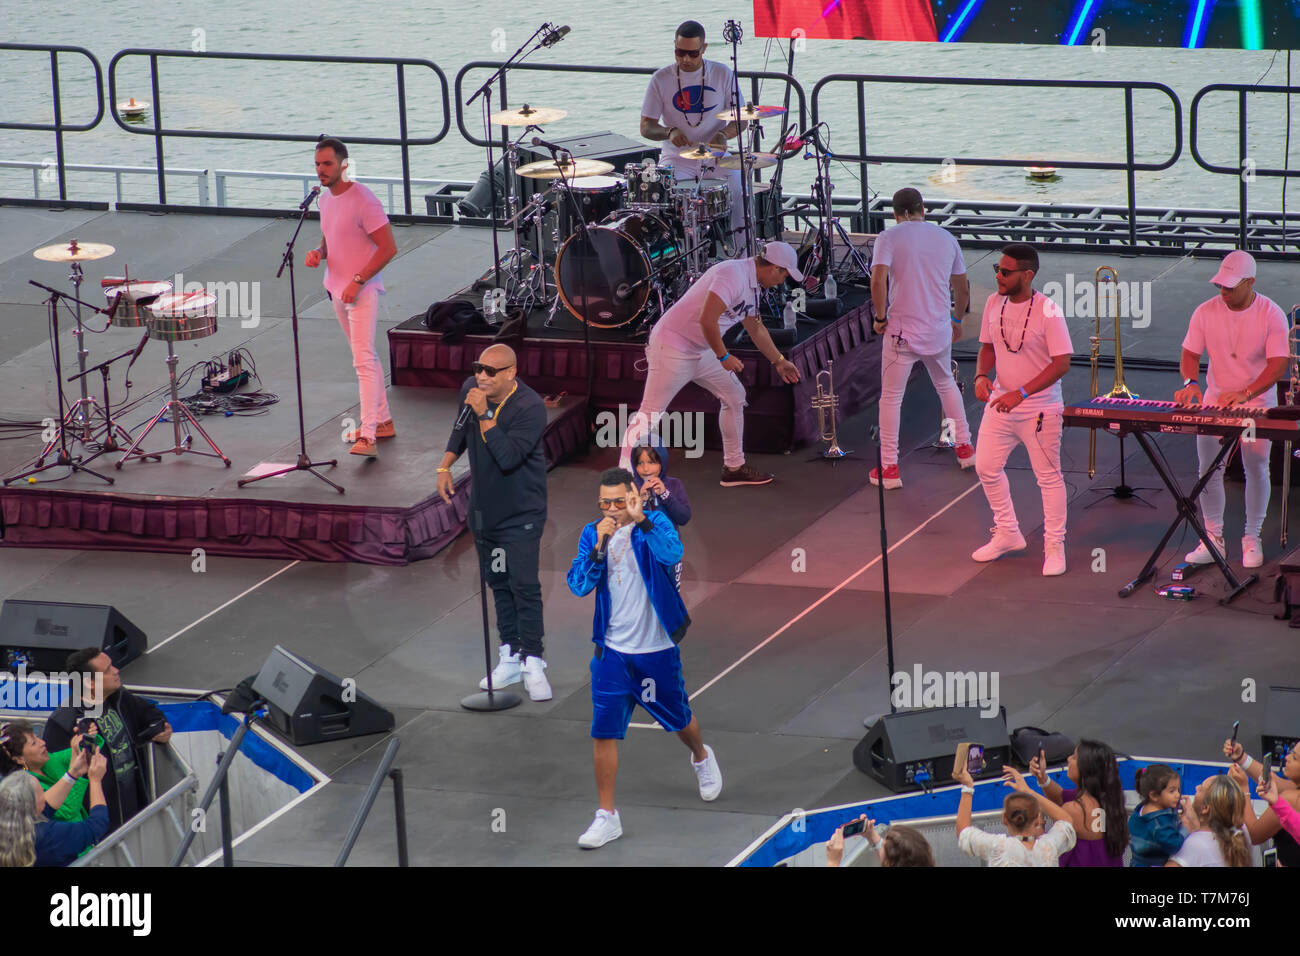 Orlando, Florida. March 17, 2019. Randy Malcom and Alexander Delgado by Gente de Zona singing urban music at Seaworld  in International Drive Area . Stock Photo